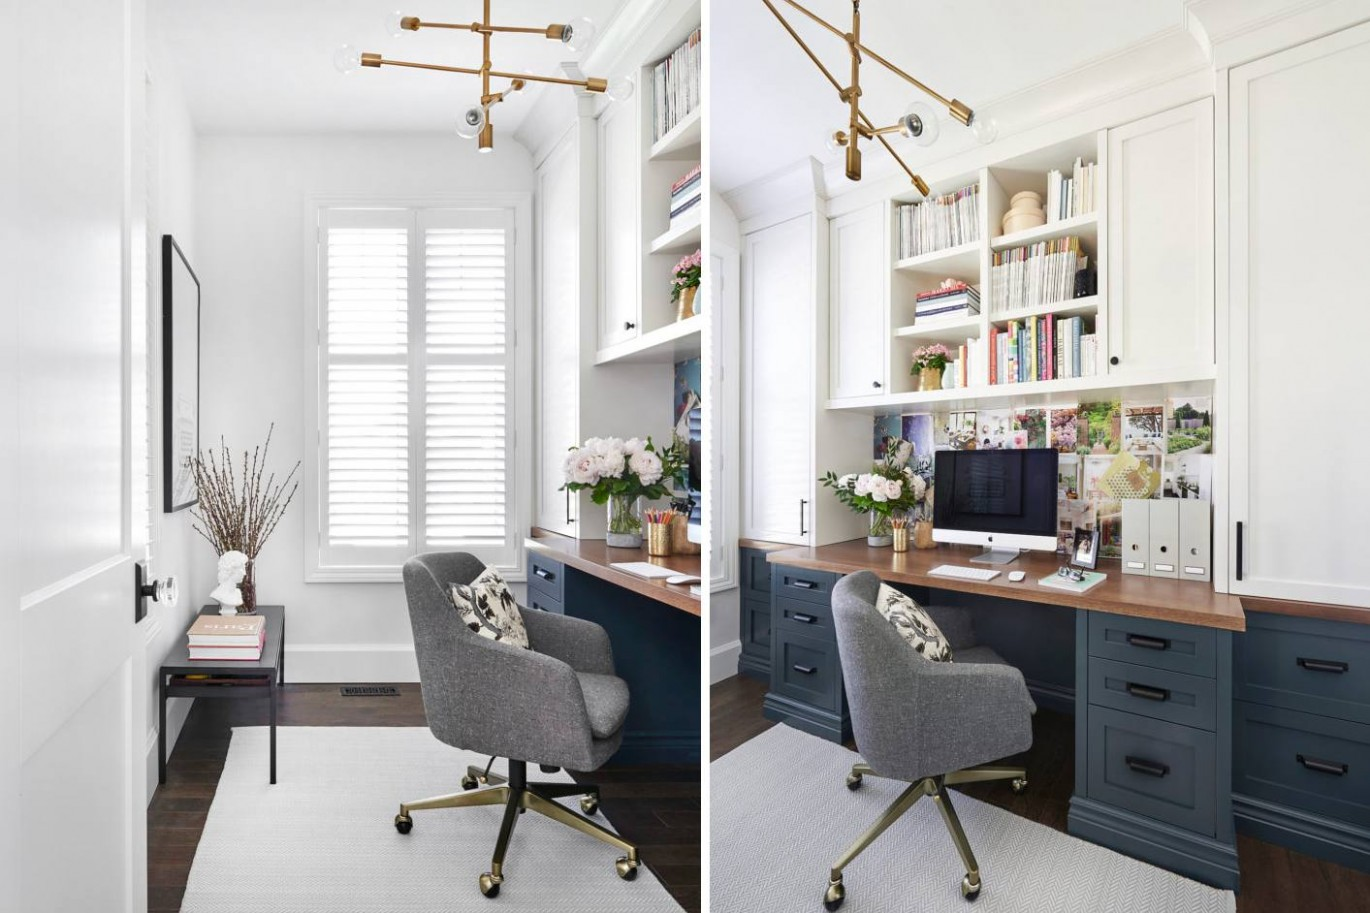 Small Home Office Ideas That Are Surprisingly Stylish - Home Office Ideas Small Room